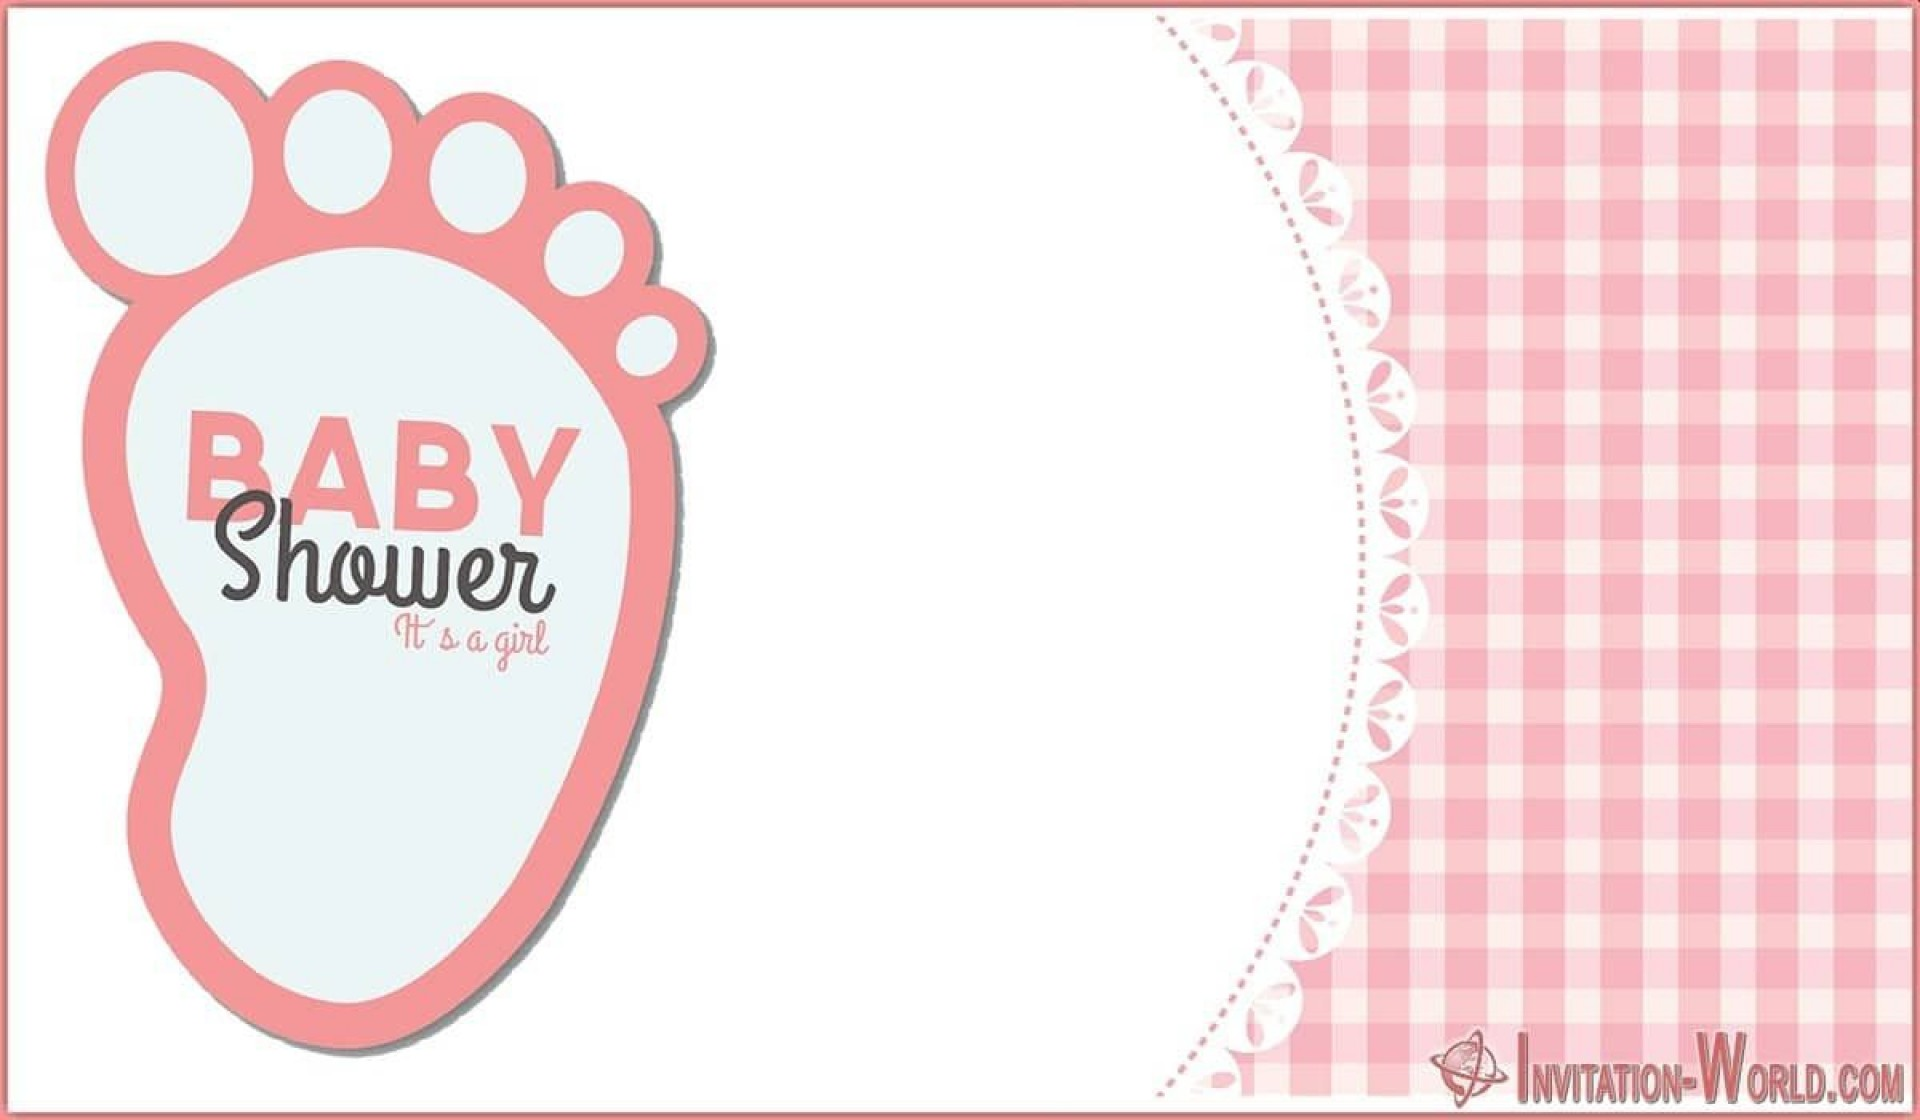 008 Exceptional Free Baby Shower Invitation Template Editable Example  Digital Microsoft Word1920